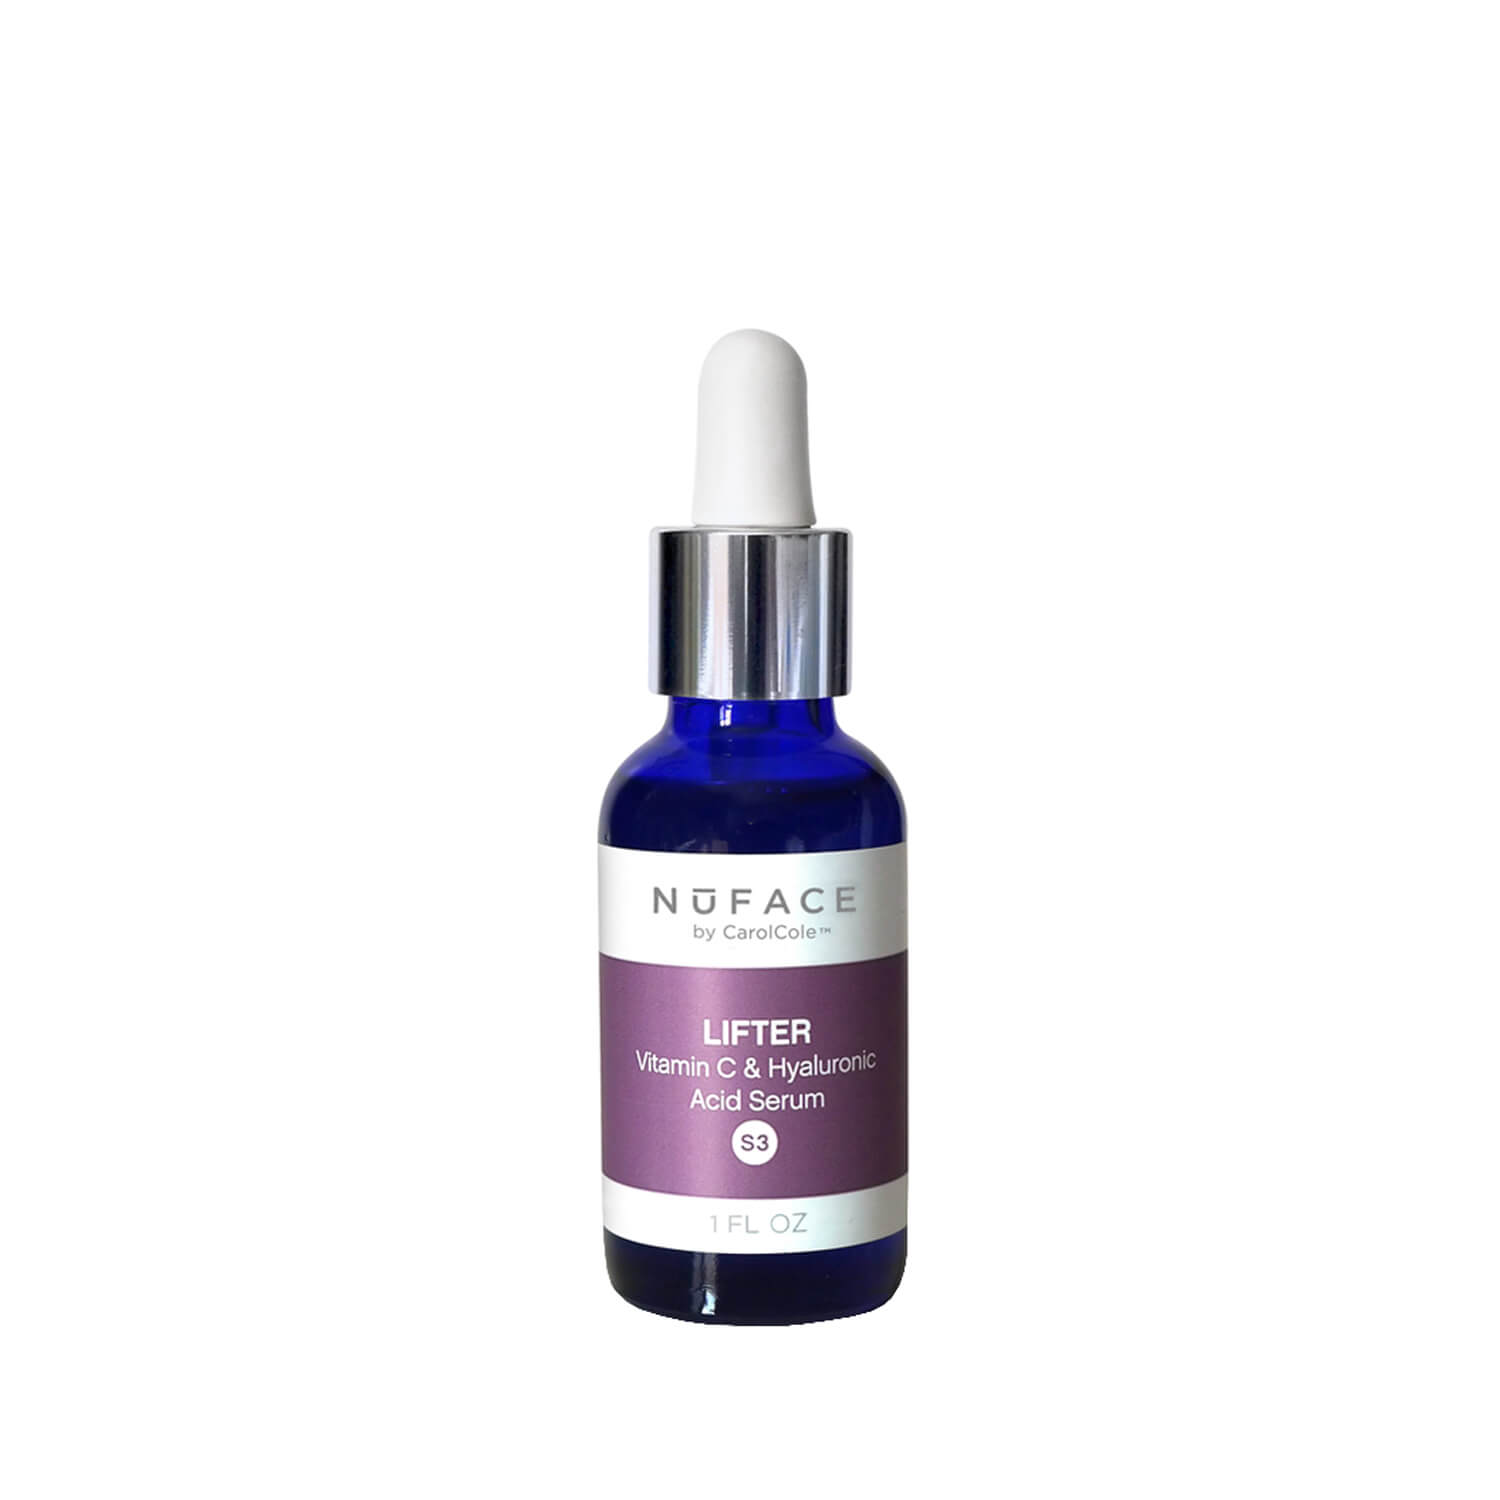 NuFACE Lifter Vitamin C and Hyaluronic Acid Serum S3